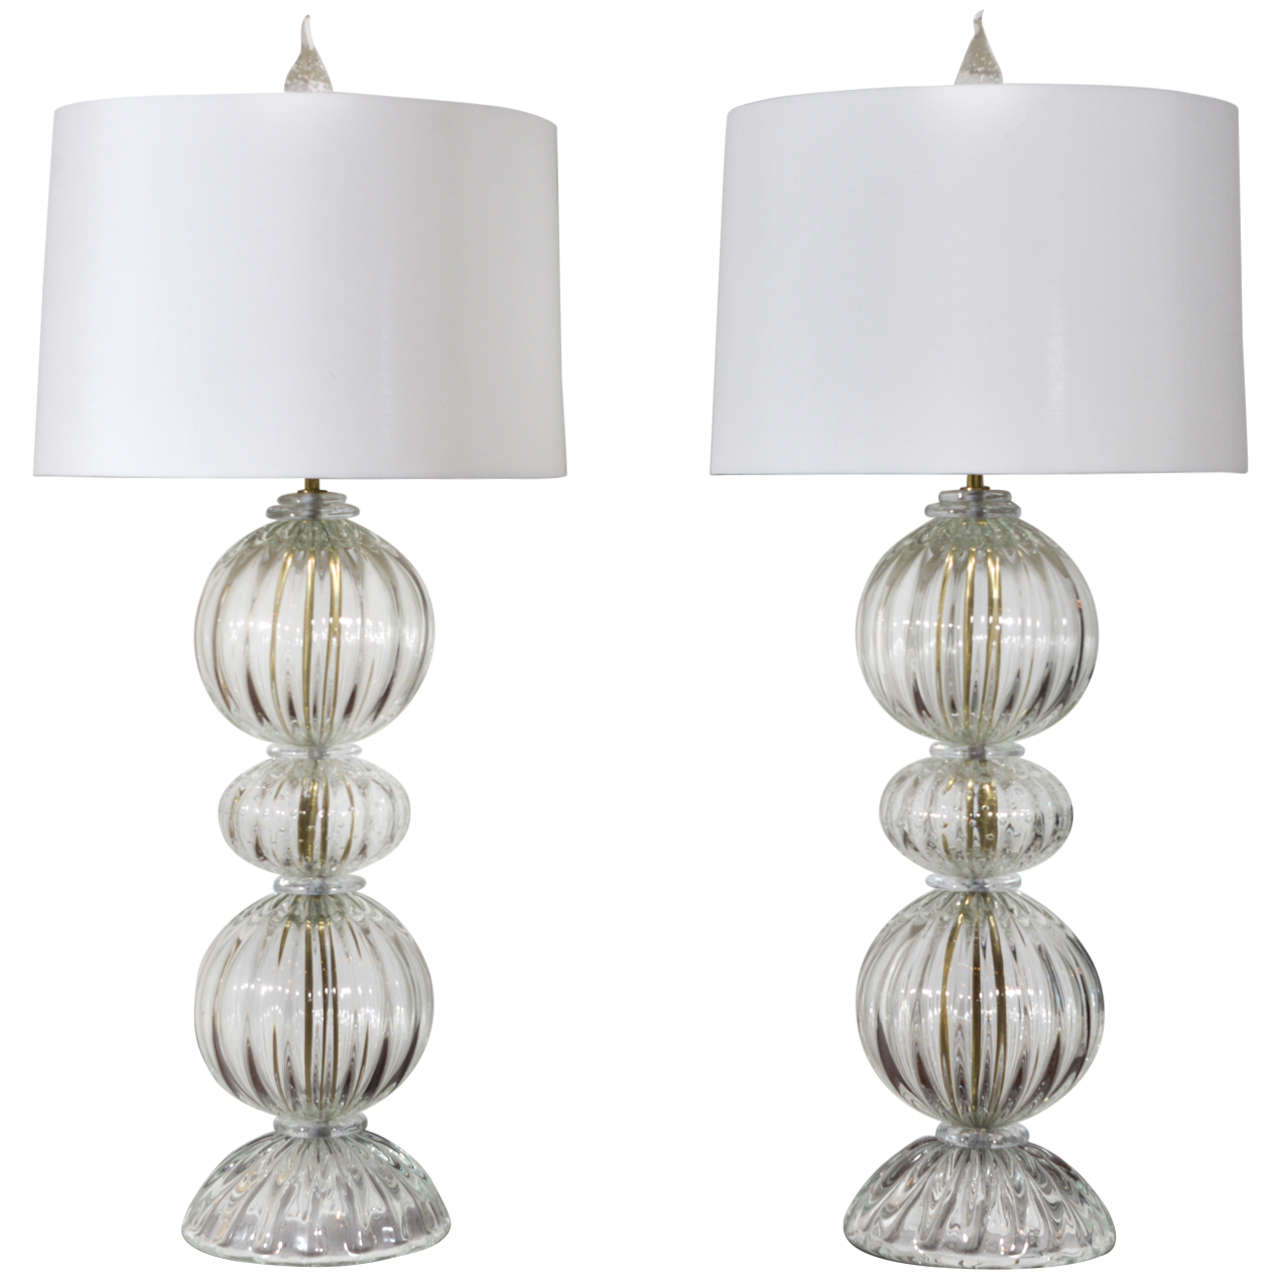 Pair of Clear Murano Glass Lamps by Barovier